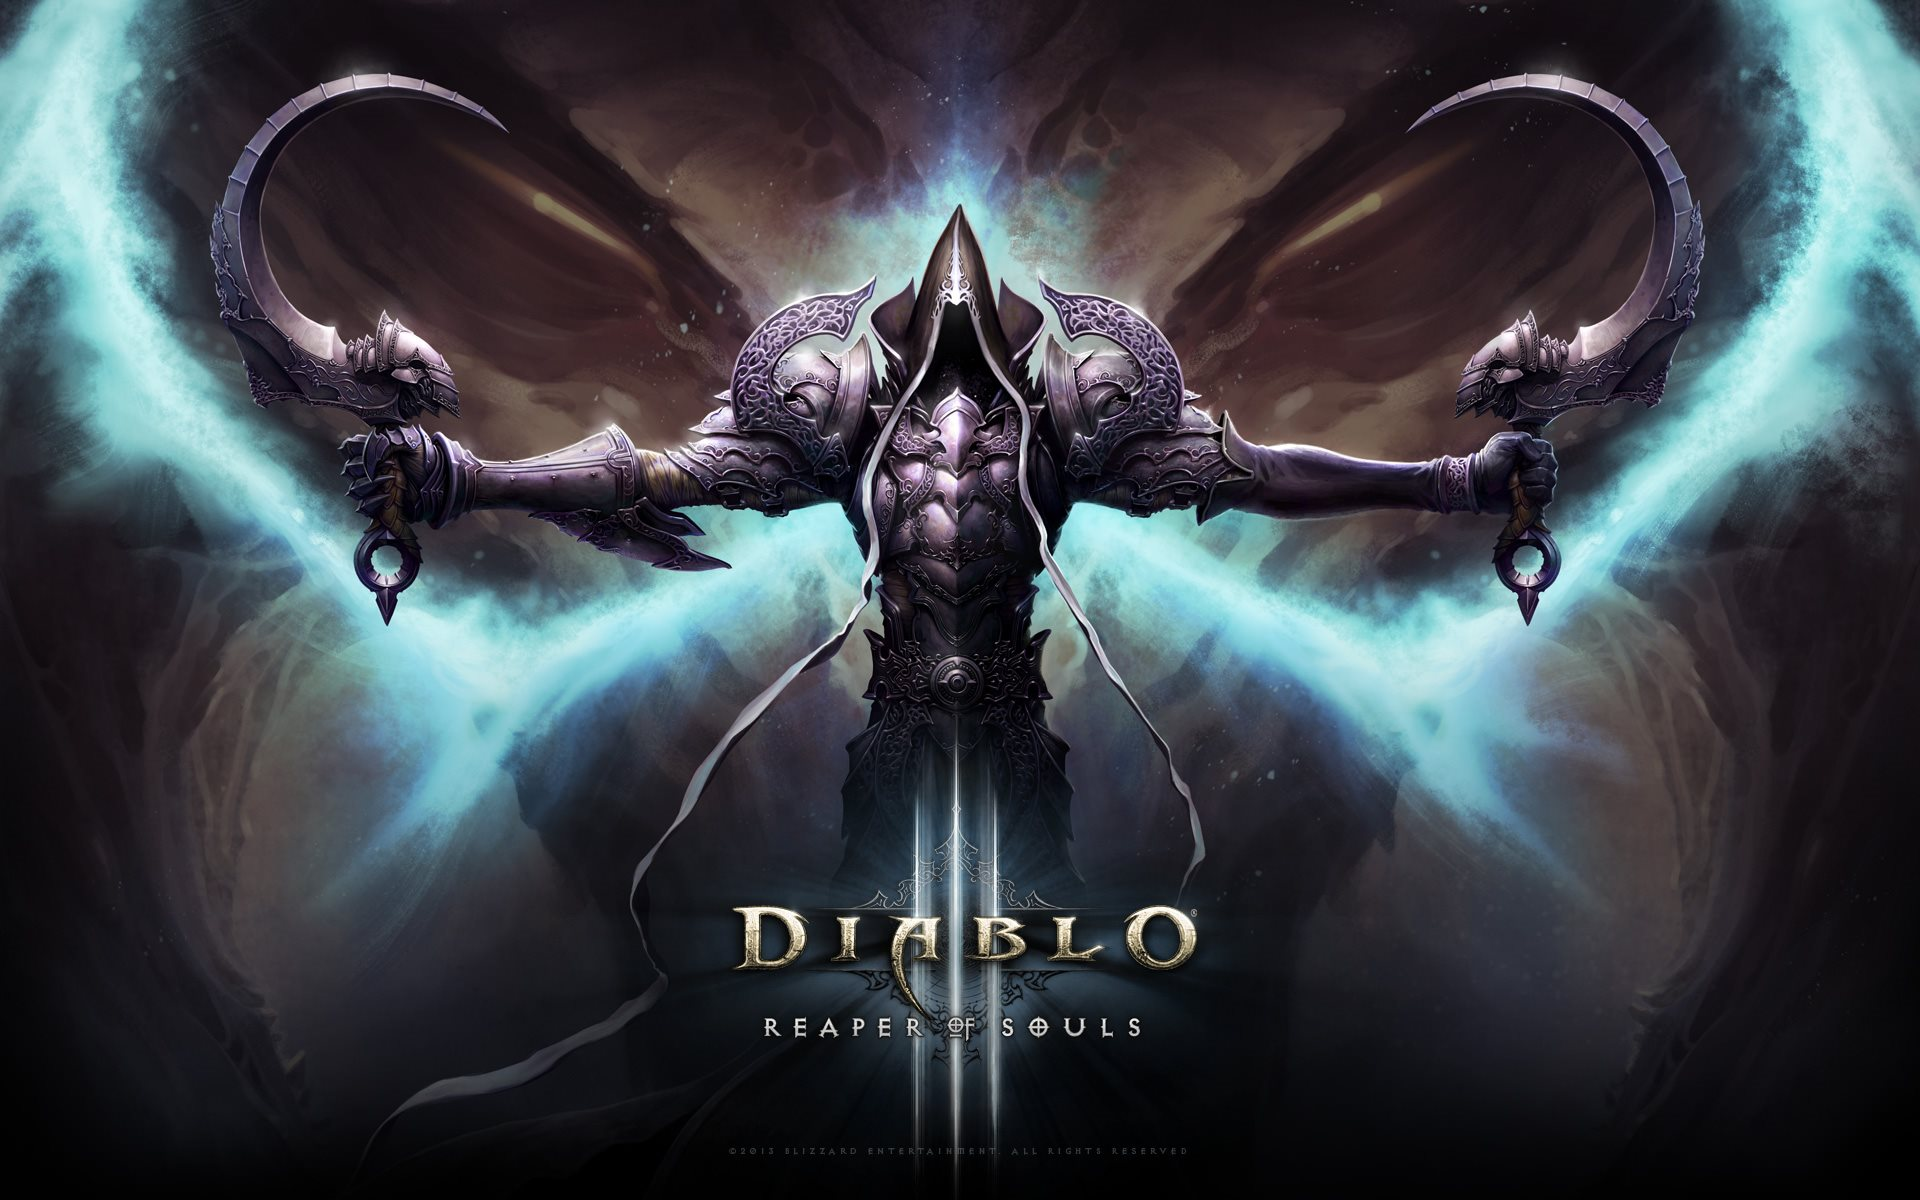 Diablo-Reaper-of-Souls-2 Computer Wallpapers, Desktop ...